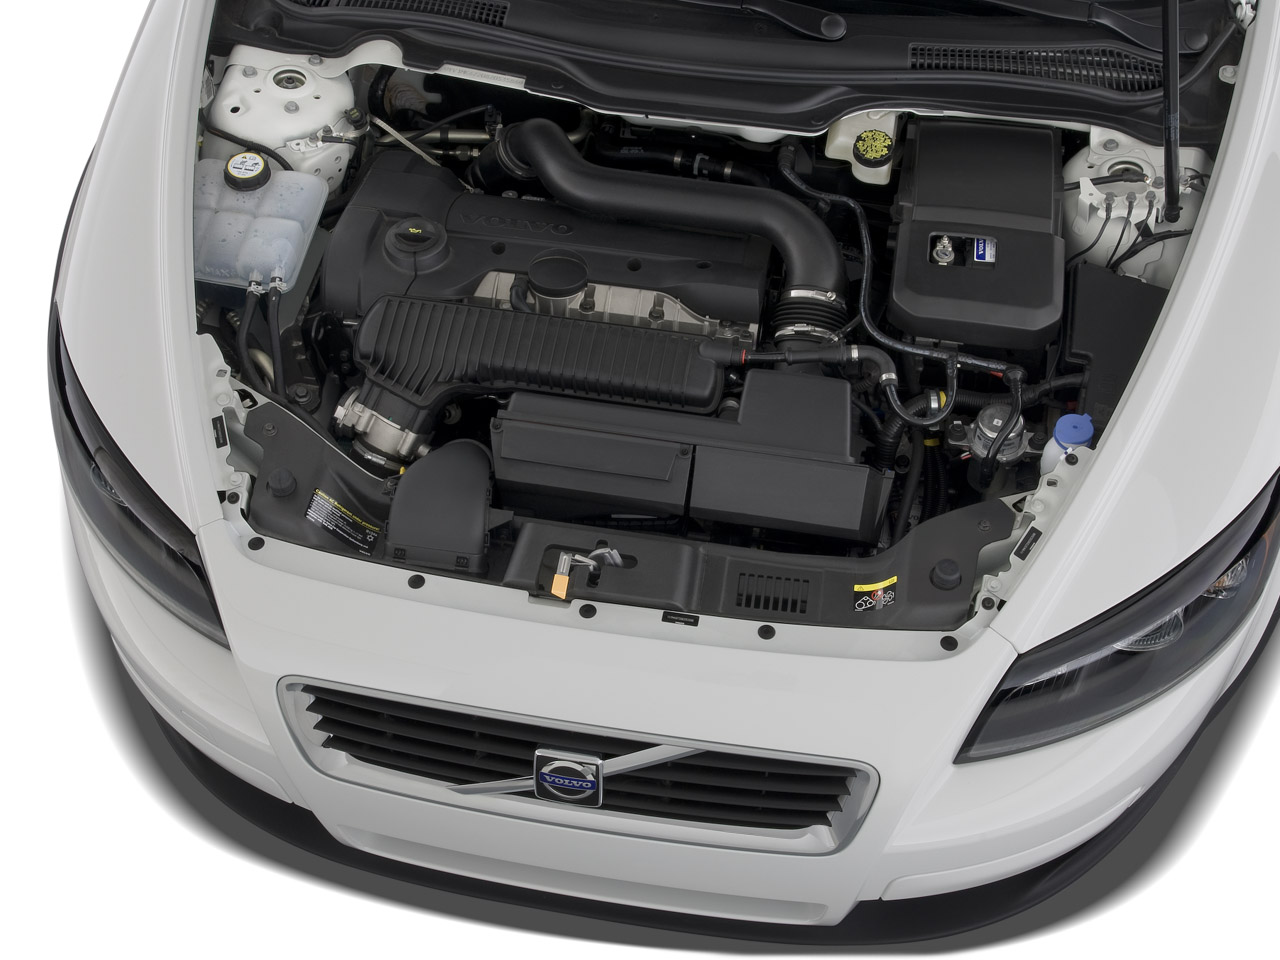 Noise Vibration And Harshness Let Volvo Be Volvo Feature 2008 Volvo C30 T5  Version 1 Noise Vibration Harshness Xc90 25l Engine Diagram